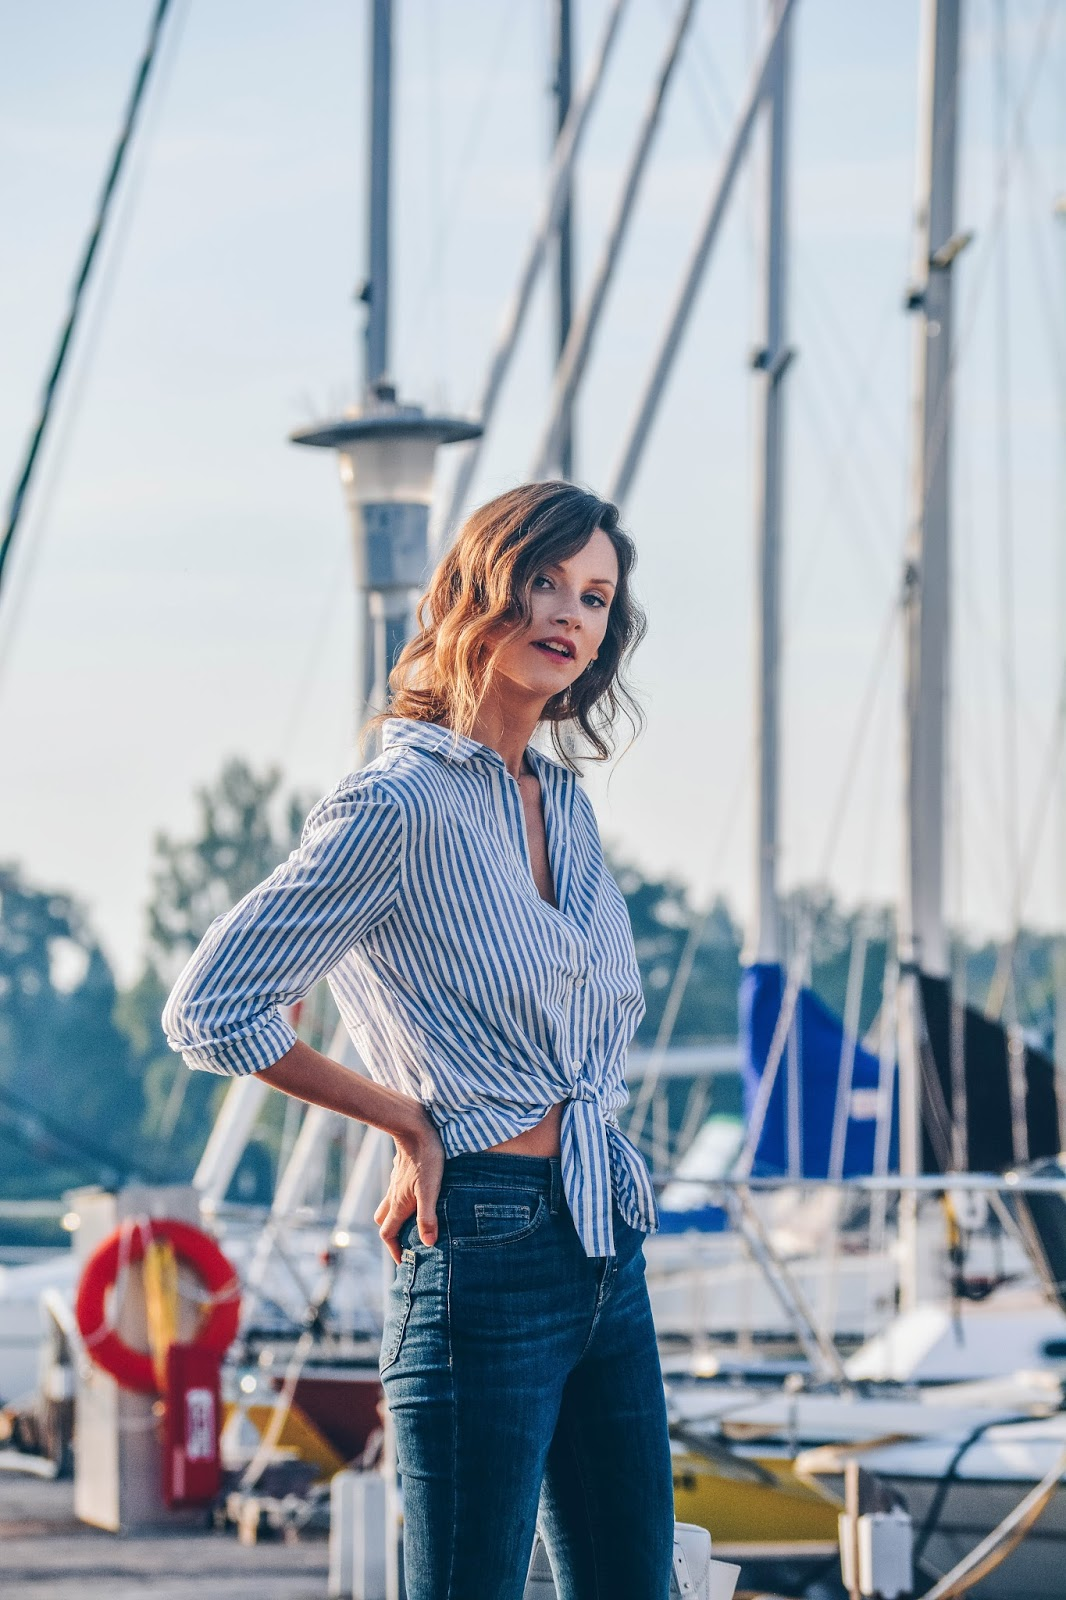 Fashion blogger, Alison Hutchinson, is wearing an H&M blue striped Shirt and Topshop Jamie Jeans